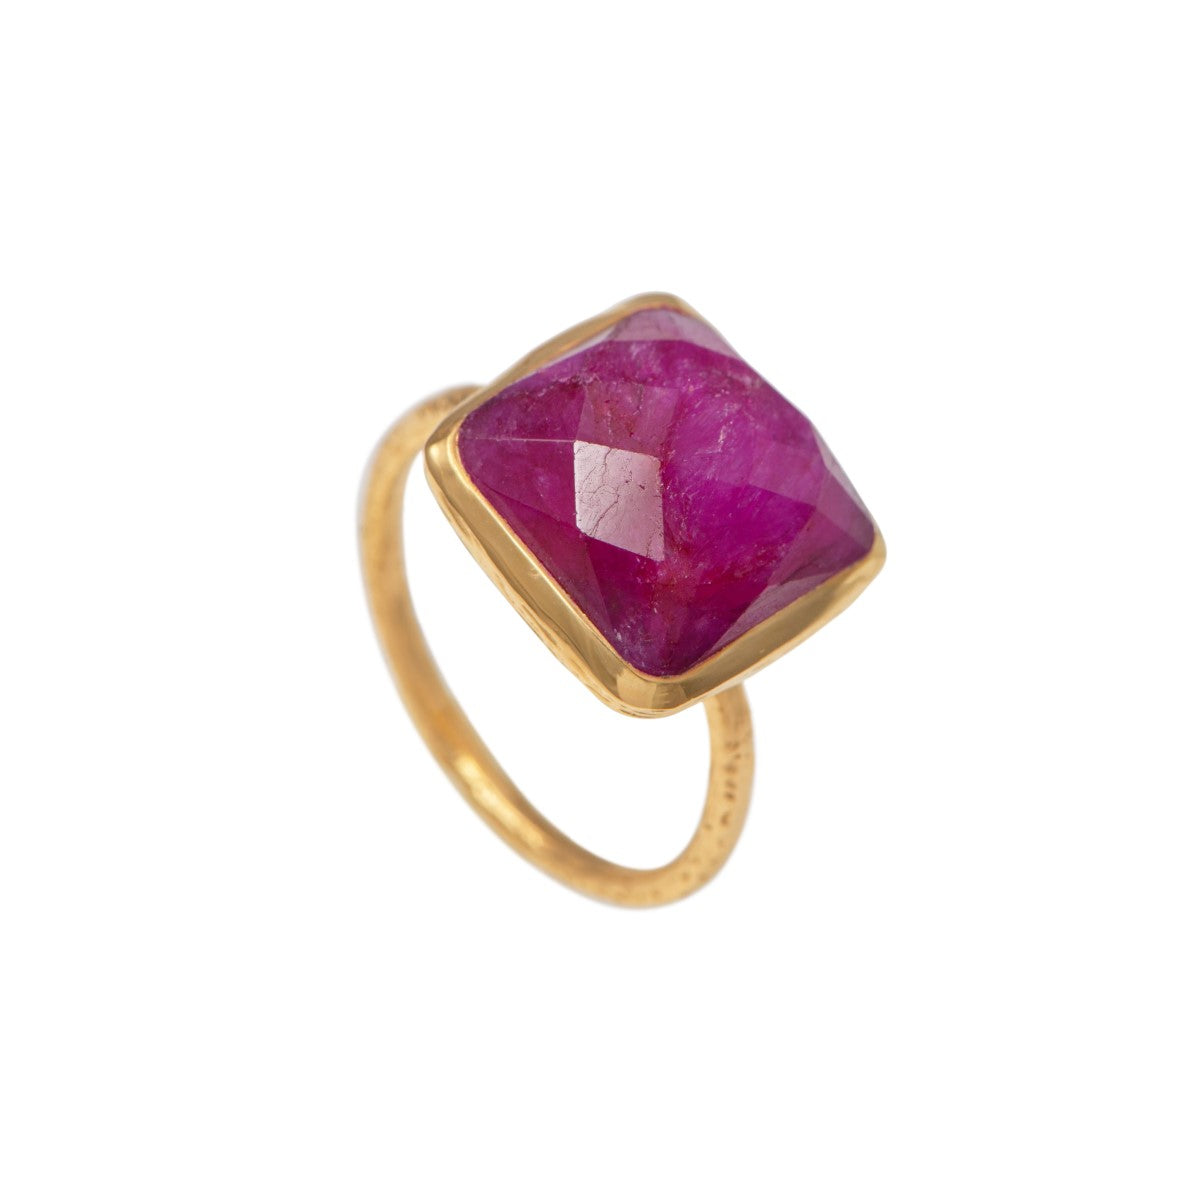 Gold Plated Silver Ring with Square Semiprecious Stone - Ruby Quartz